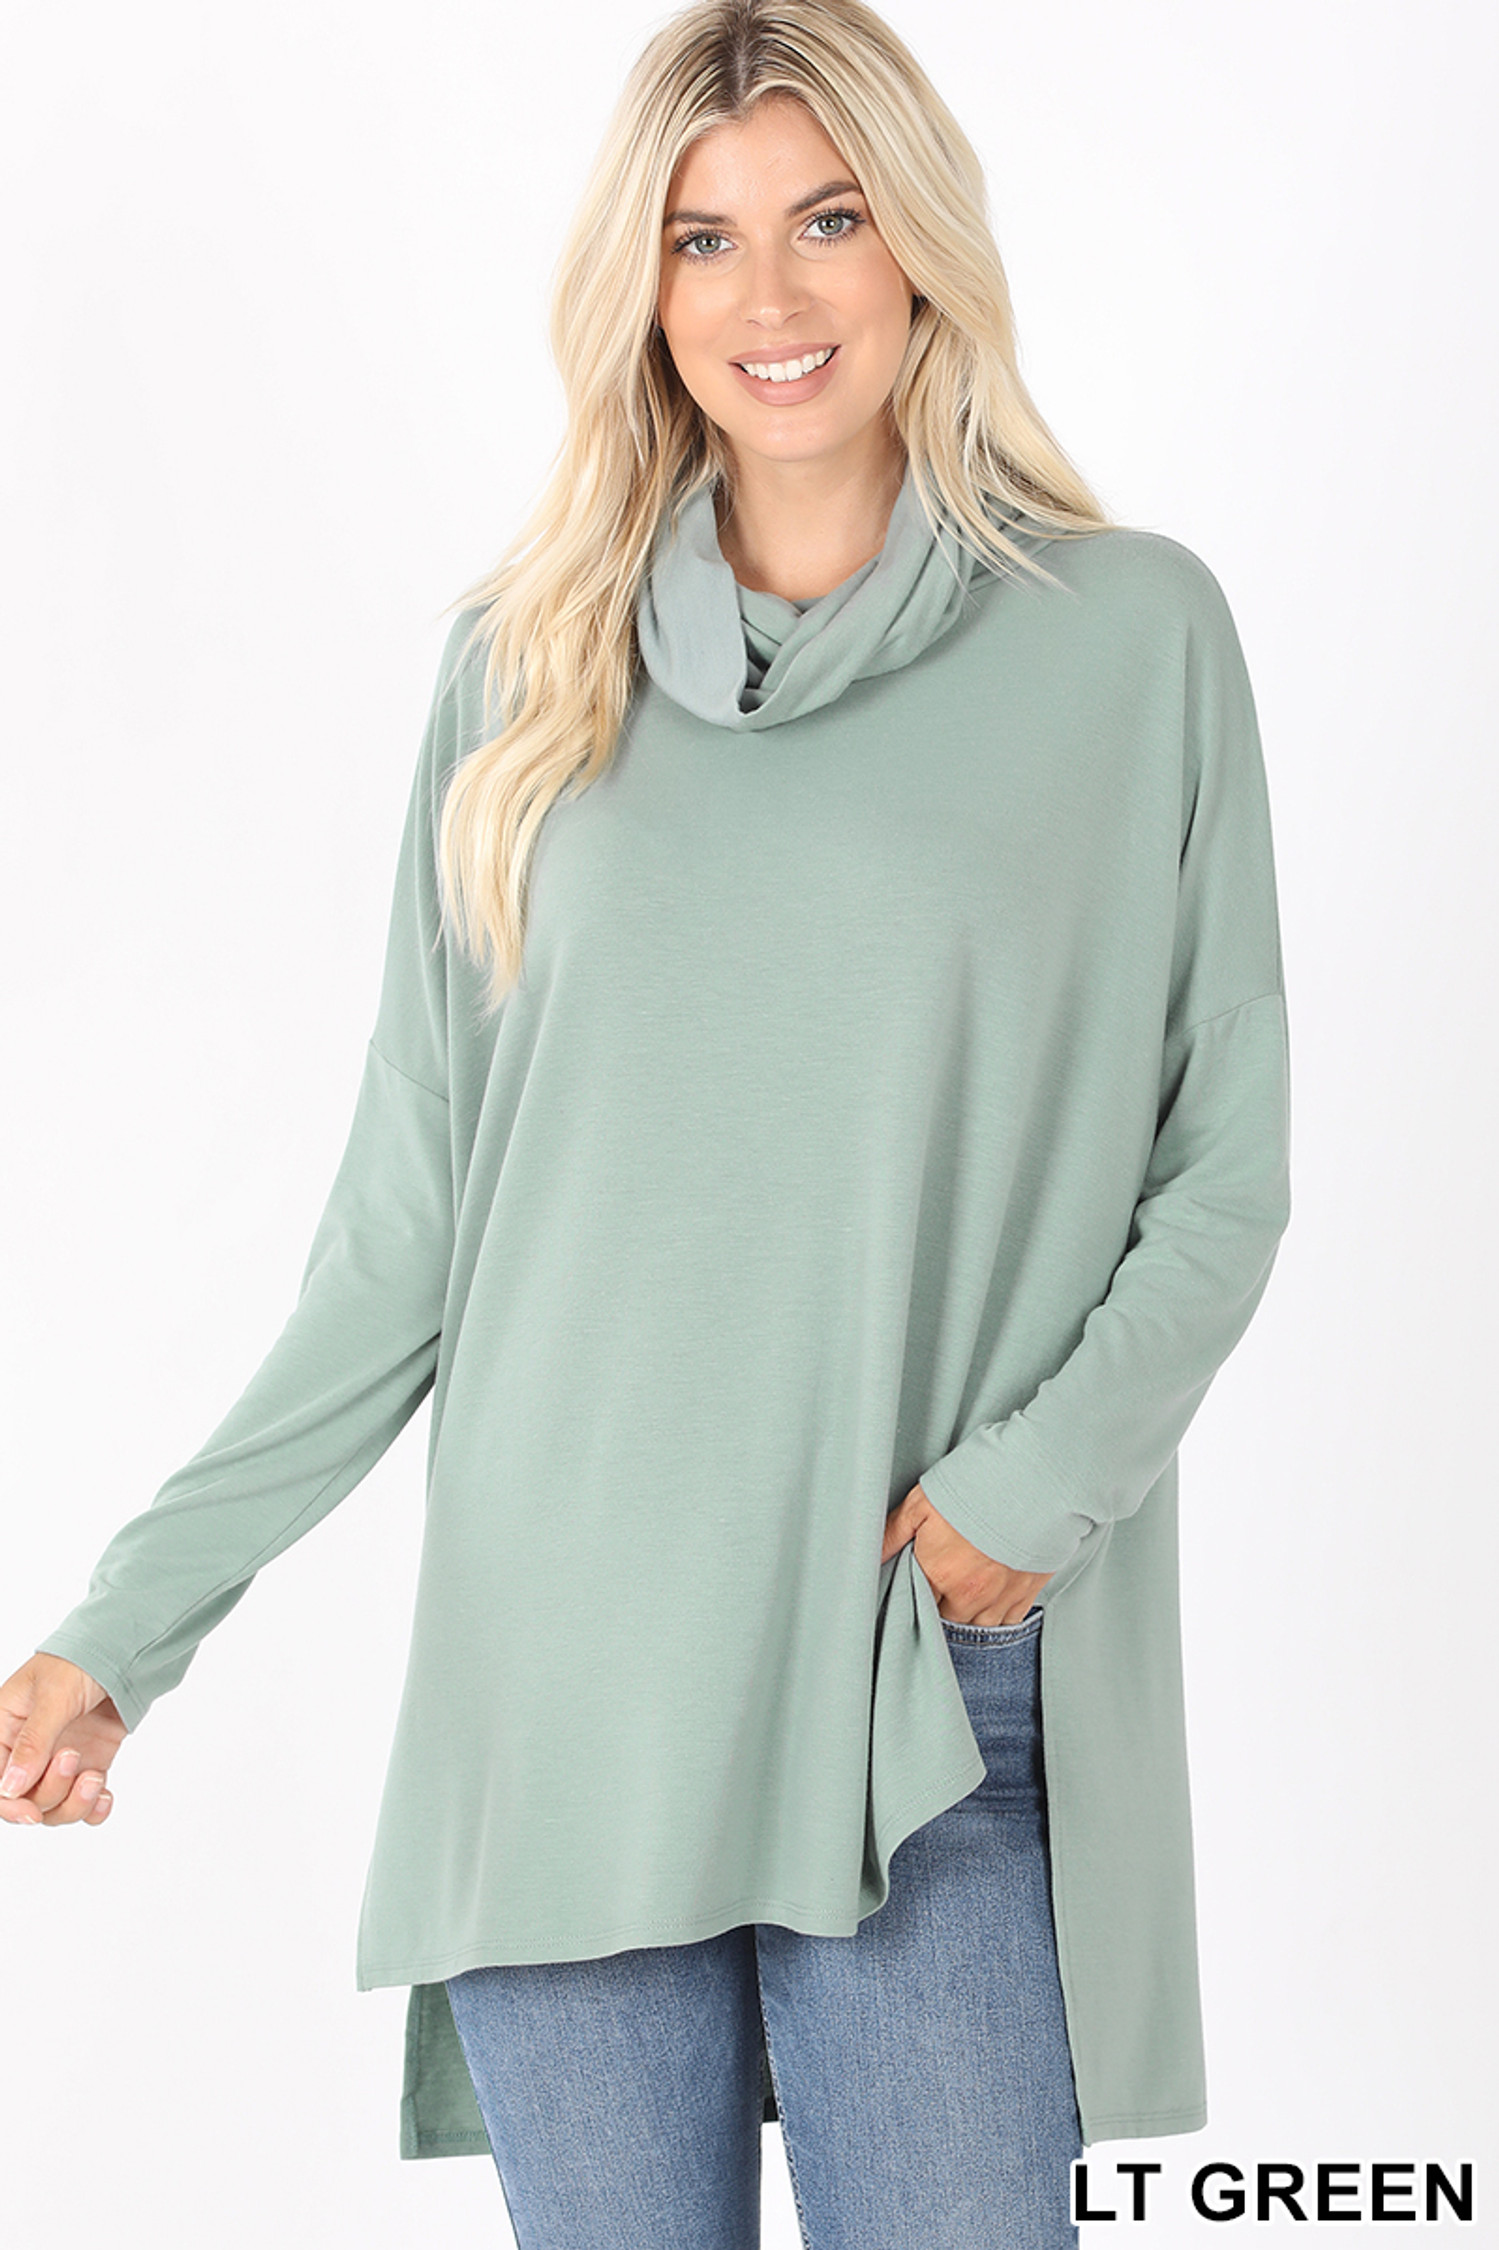 Front image of Light Green Cowl Neck Hi-Low Long Sleeve Top